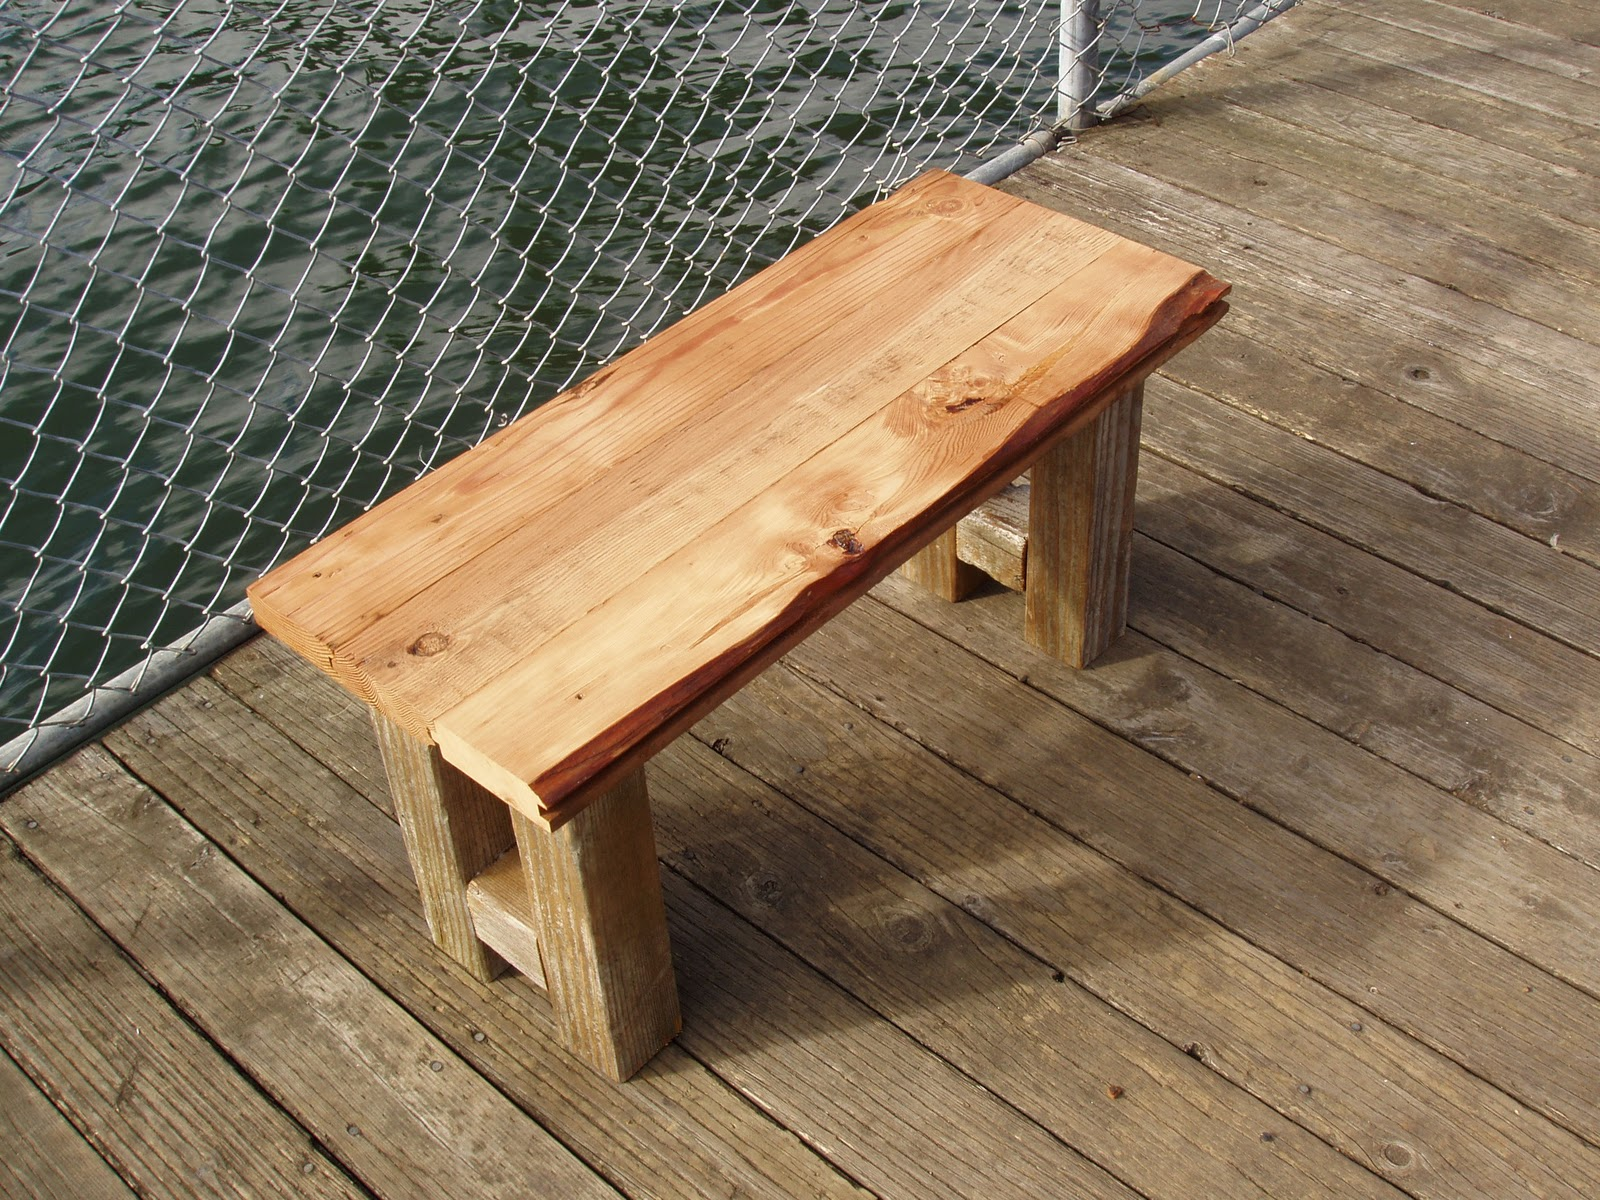 driftedge woodworking Sea Legs Small Rustic Coffee Table Sold